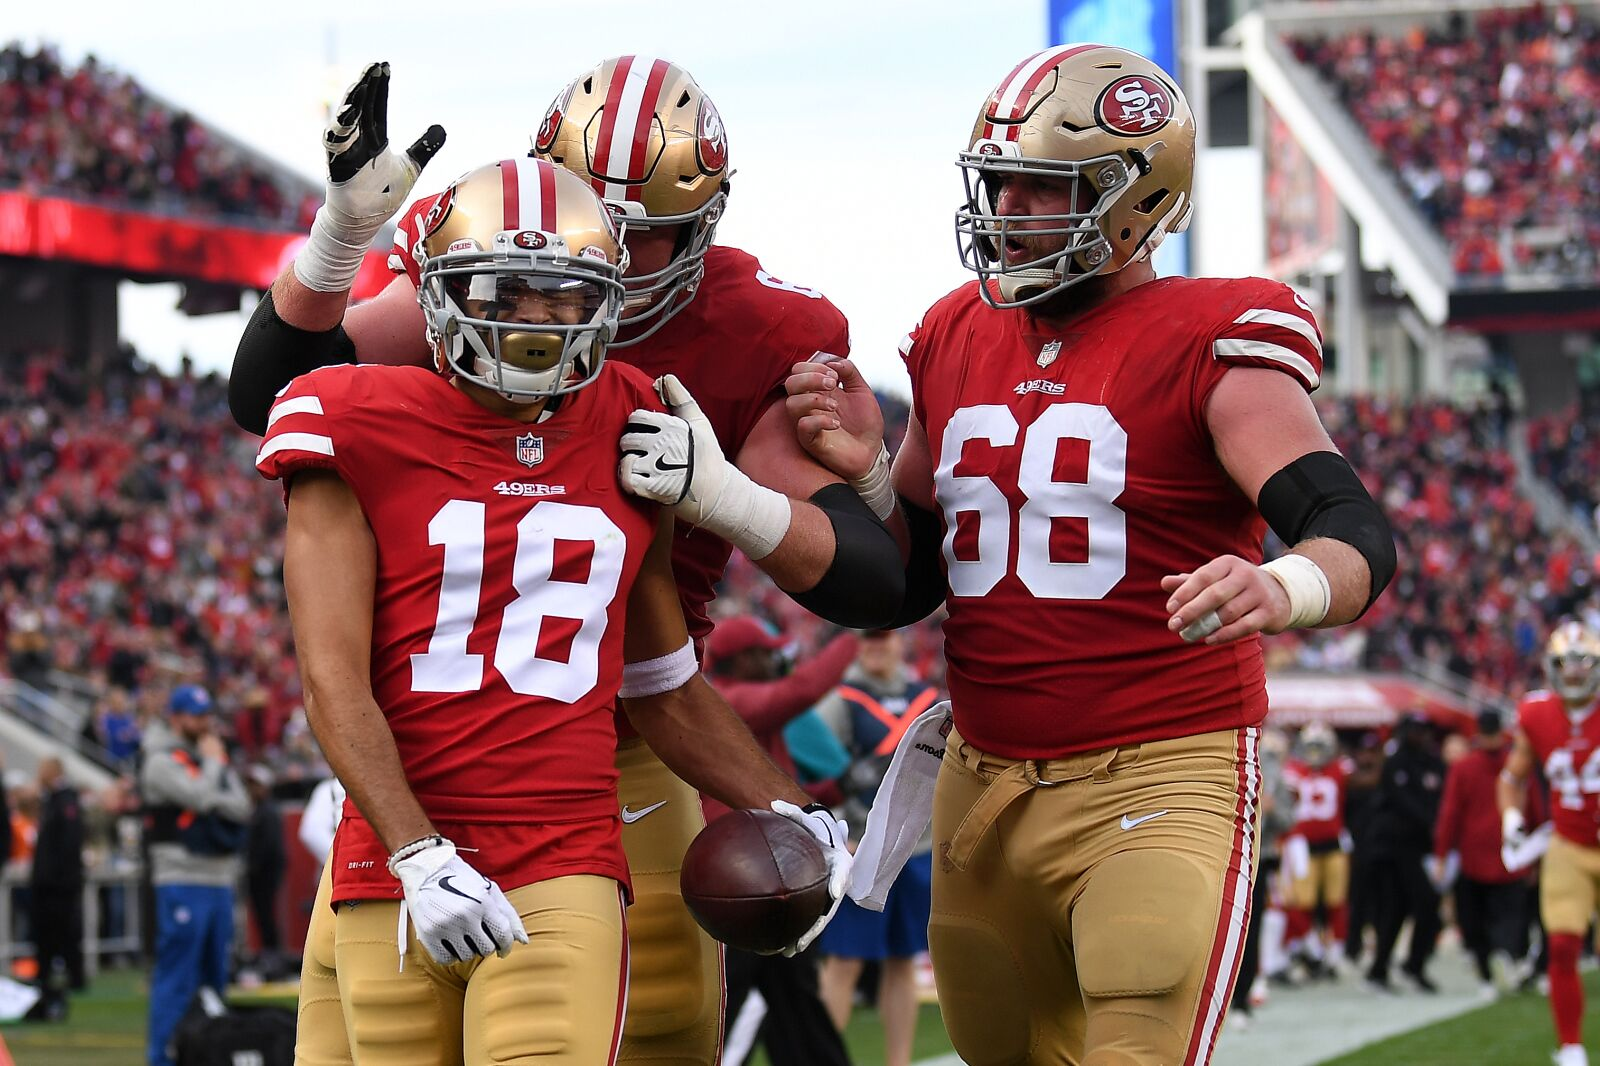 The San Francisco 49ers will be the NFL's most improved team in 2019